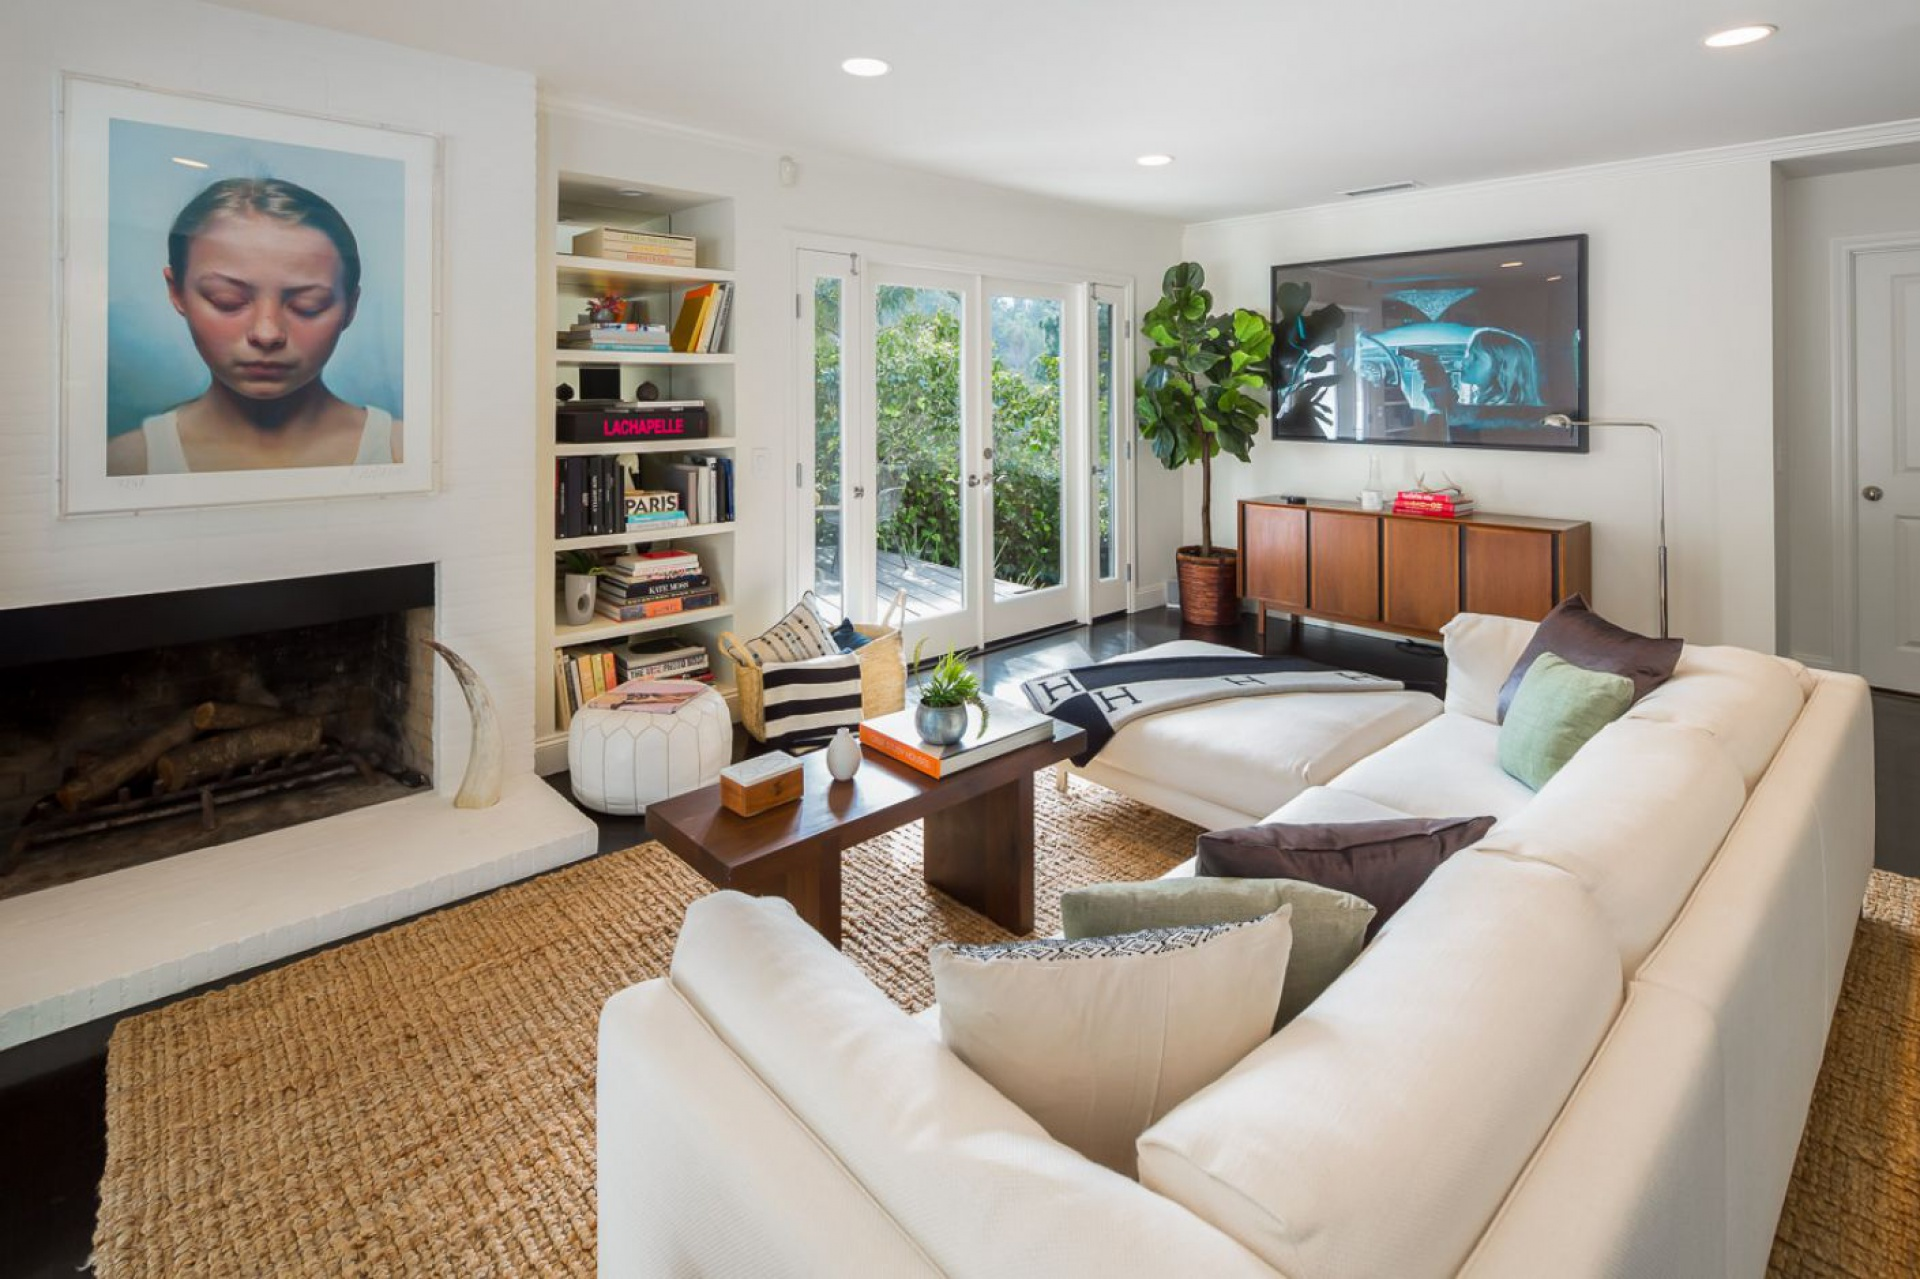 2416 Outpost Drive     |     Hollywood Hills Los Angeles CA  | Jonah Wilson